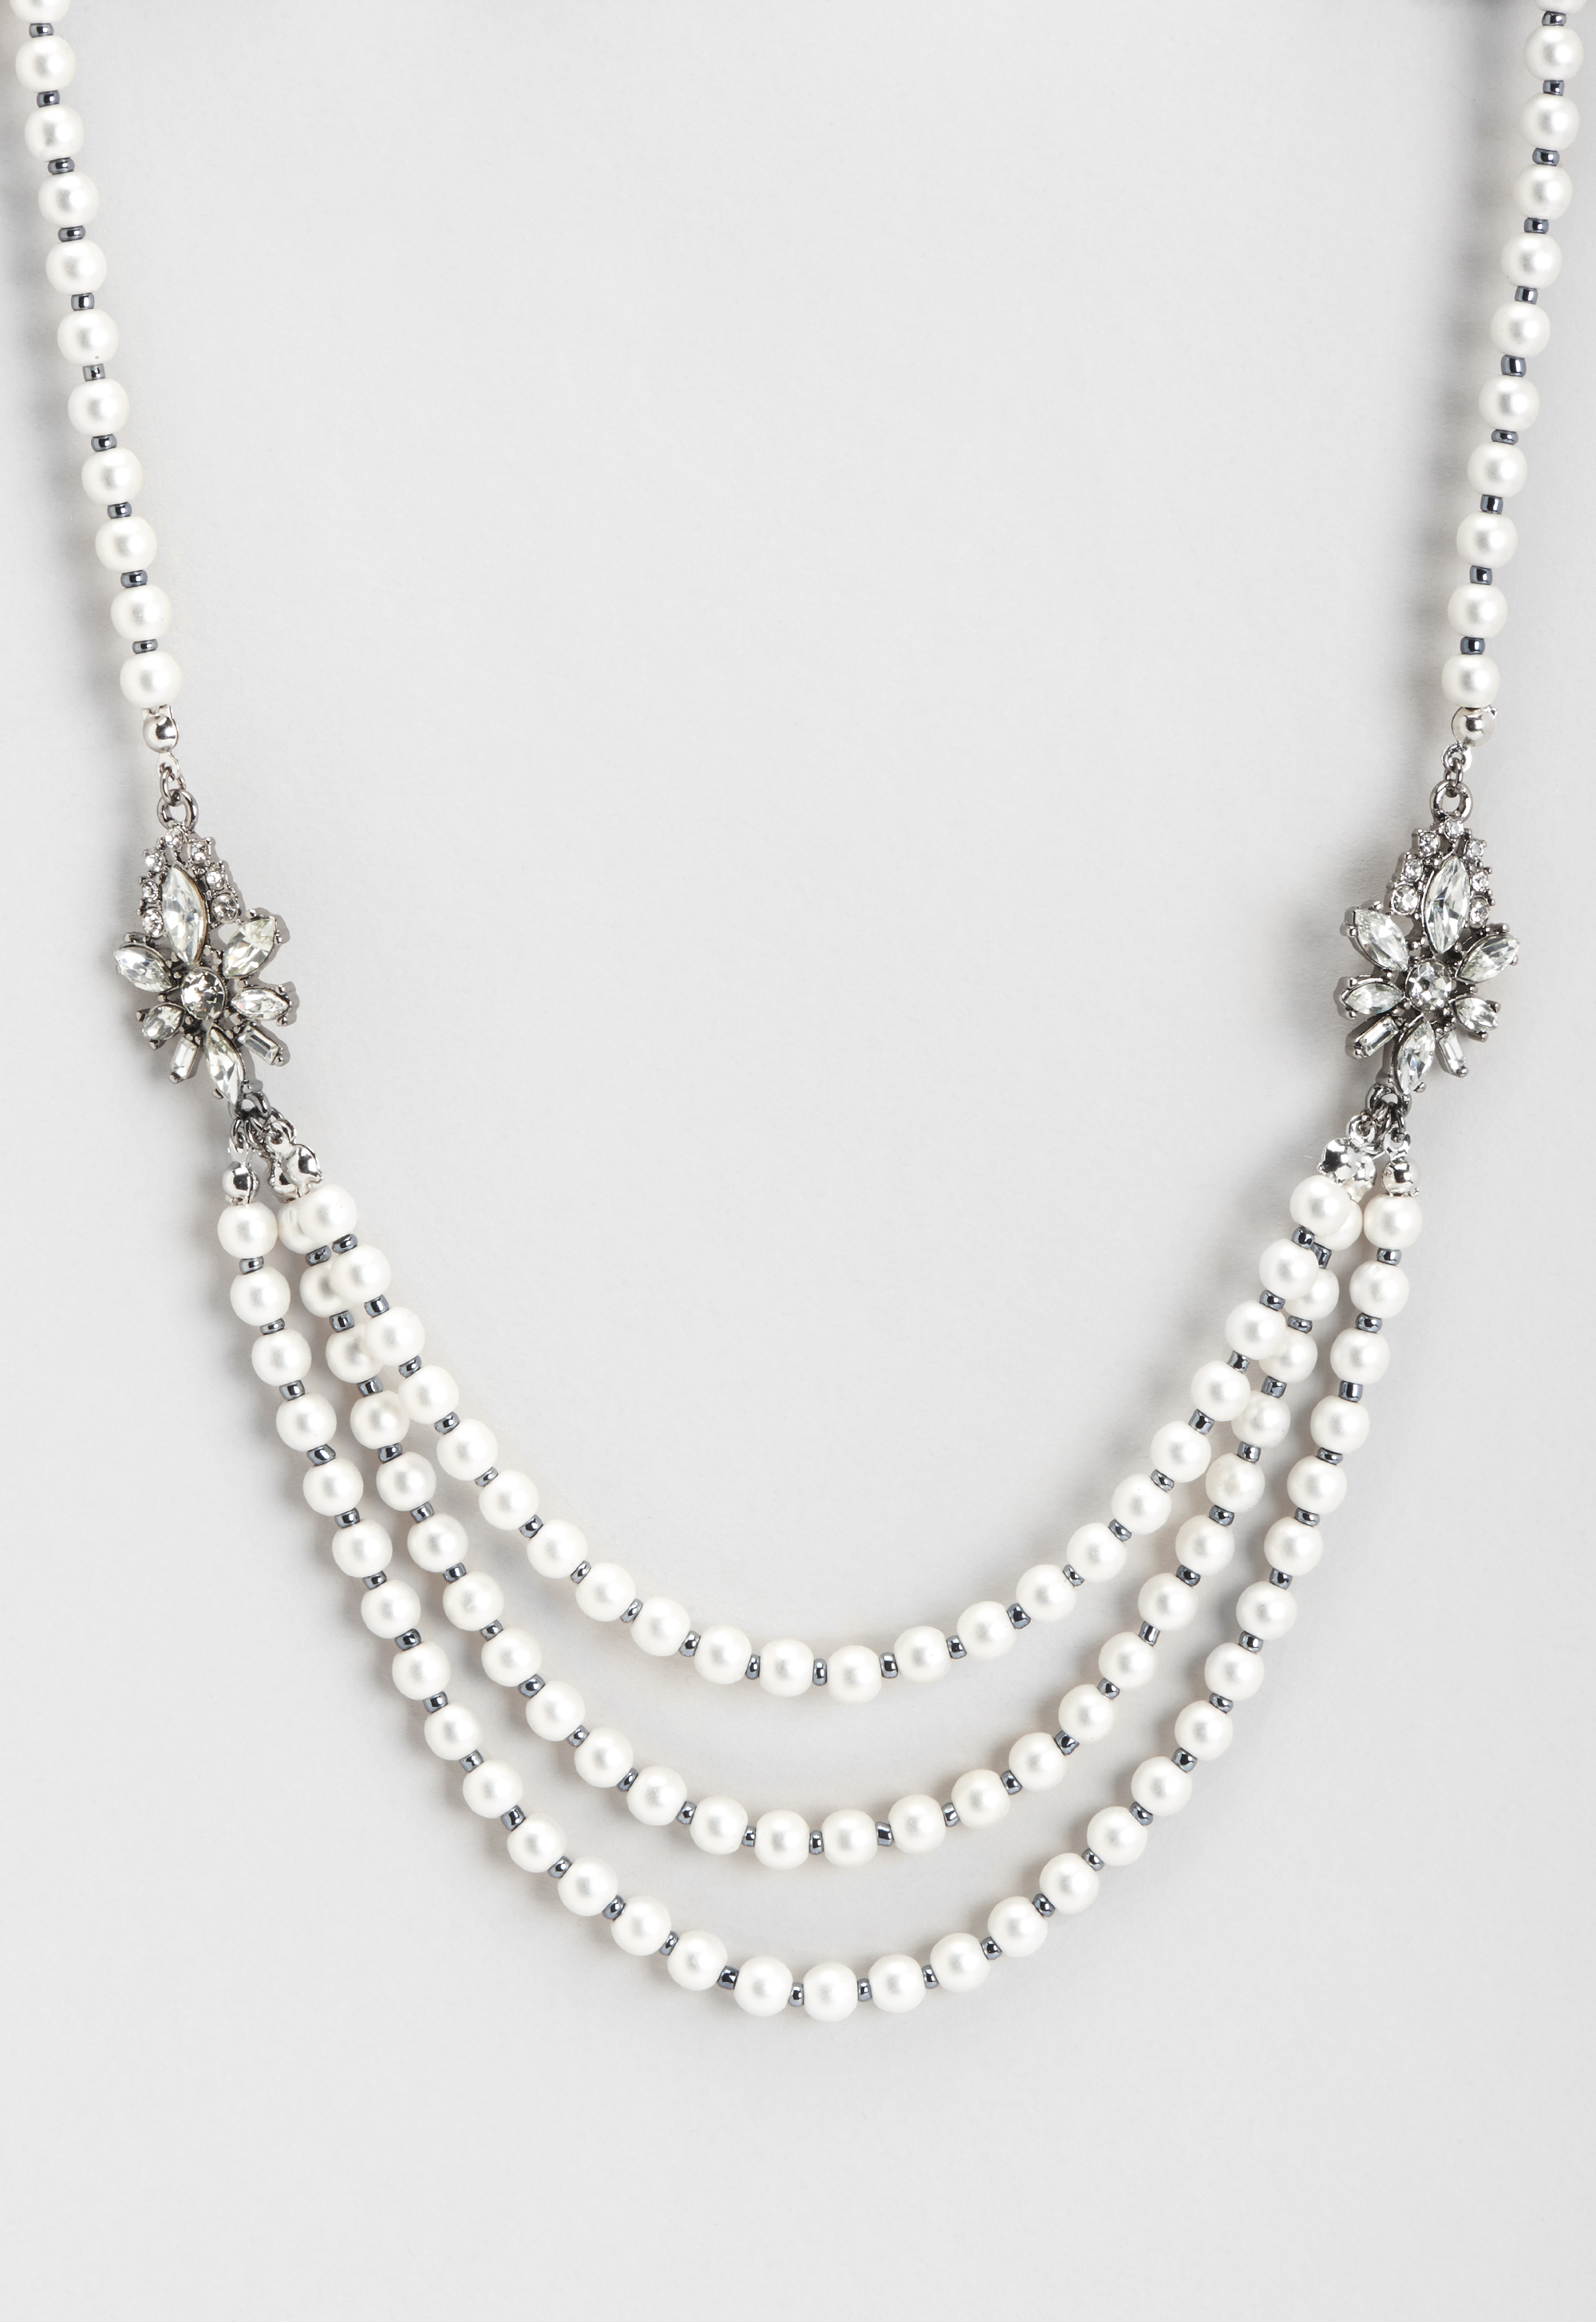 New 1920s Costume Jewelry- Earrings, Necklaces, Bracelets Strand Jeweled Pearl Necklace - White - Christopher  Banks $22.95 AT vintagedancer.com